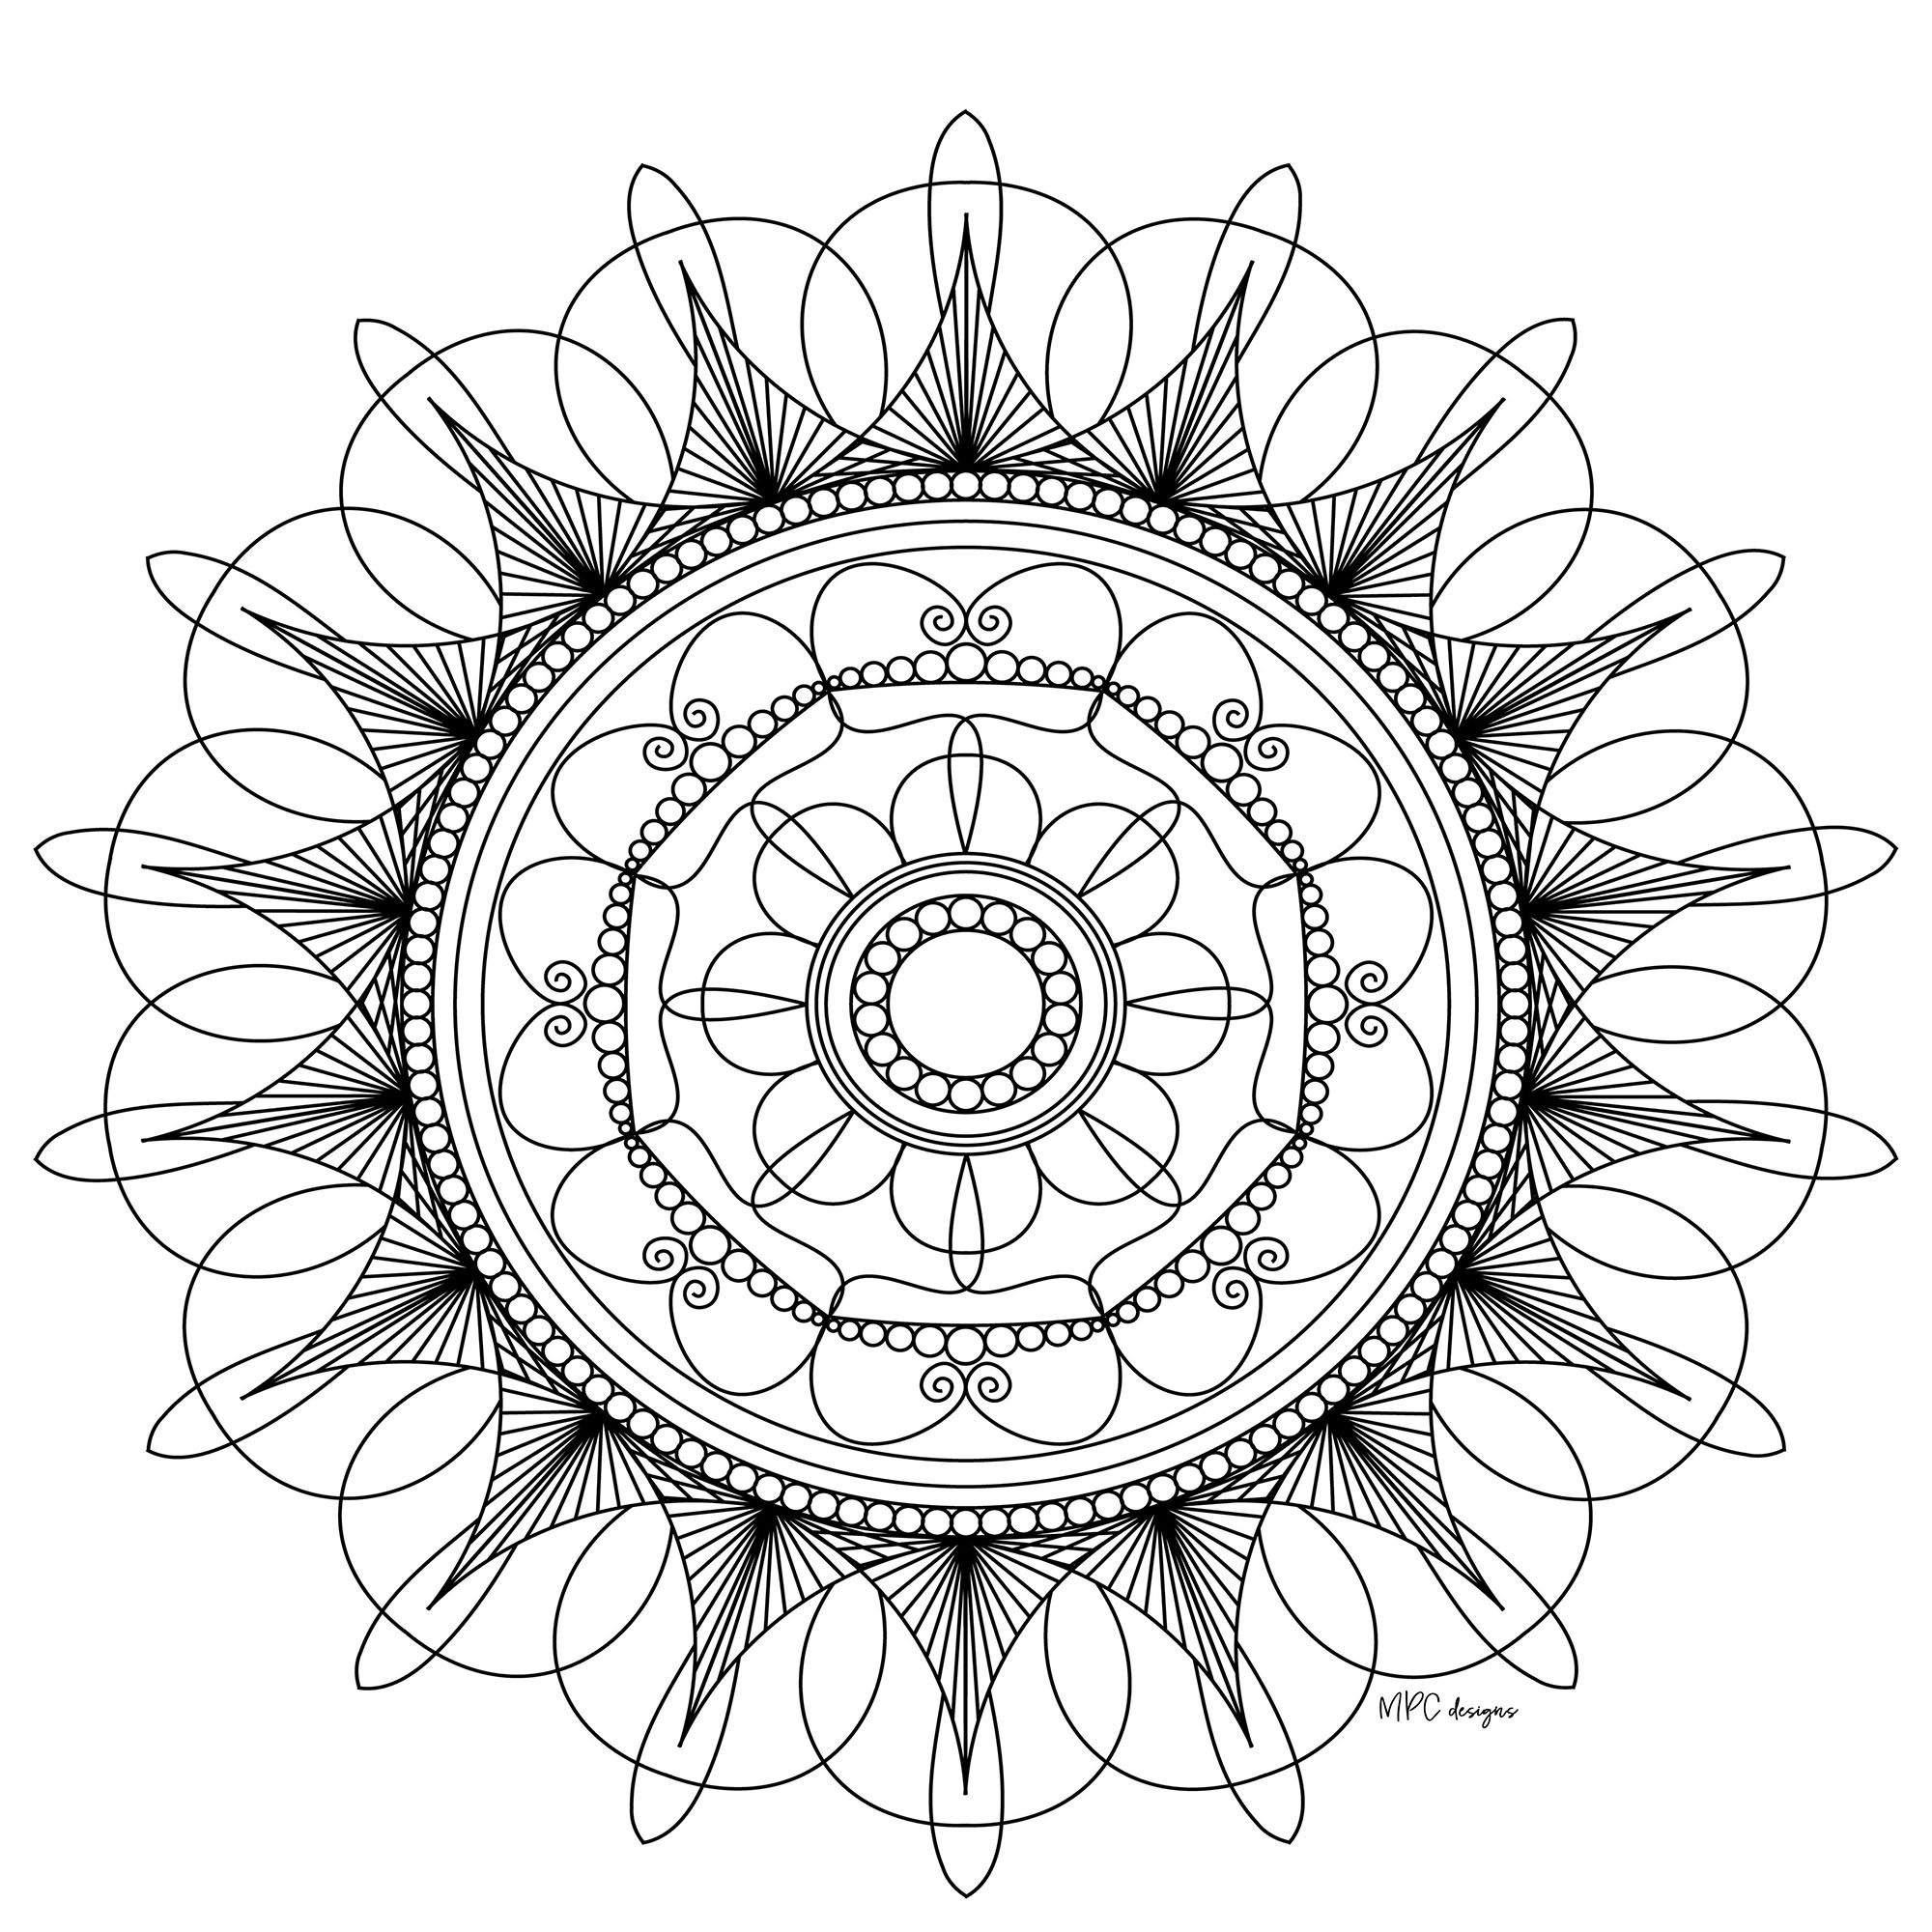 A Mandala of 'standard' difficulty level, which will be suitable for kids and adults who just want to color. Still your mind : this step is essential to get the most out of coloring to reduce your anxiety & stress.